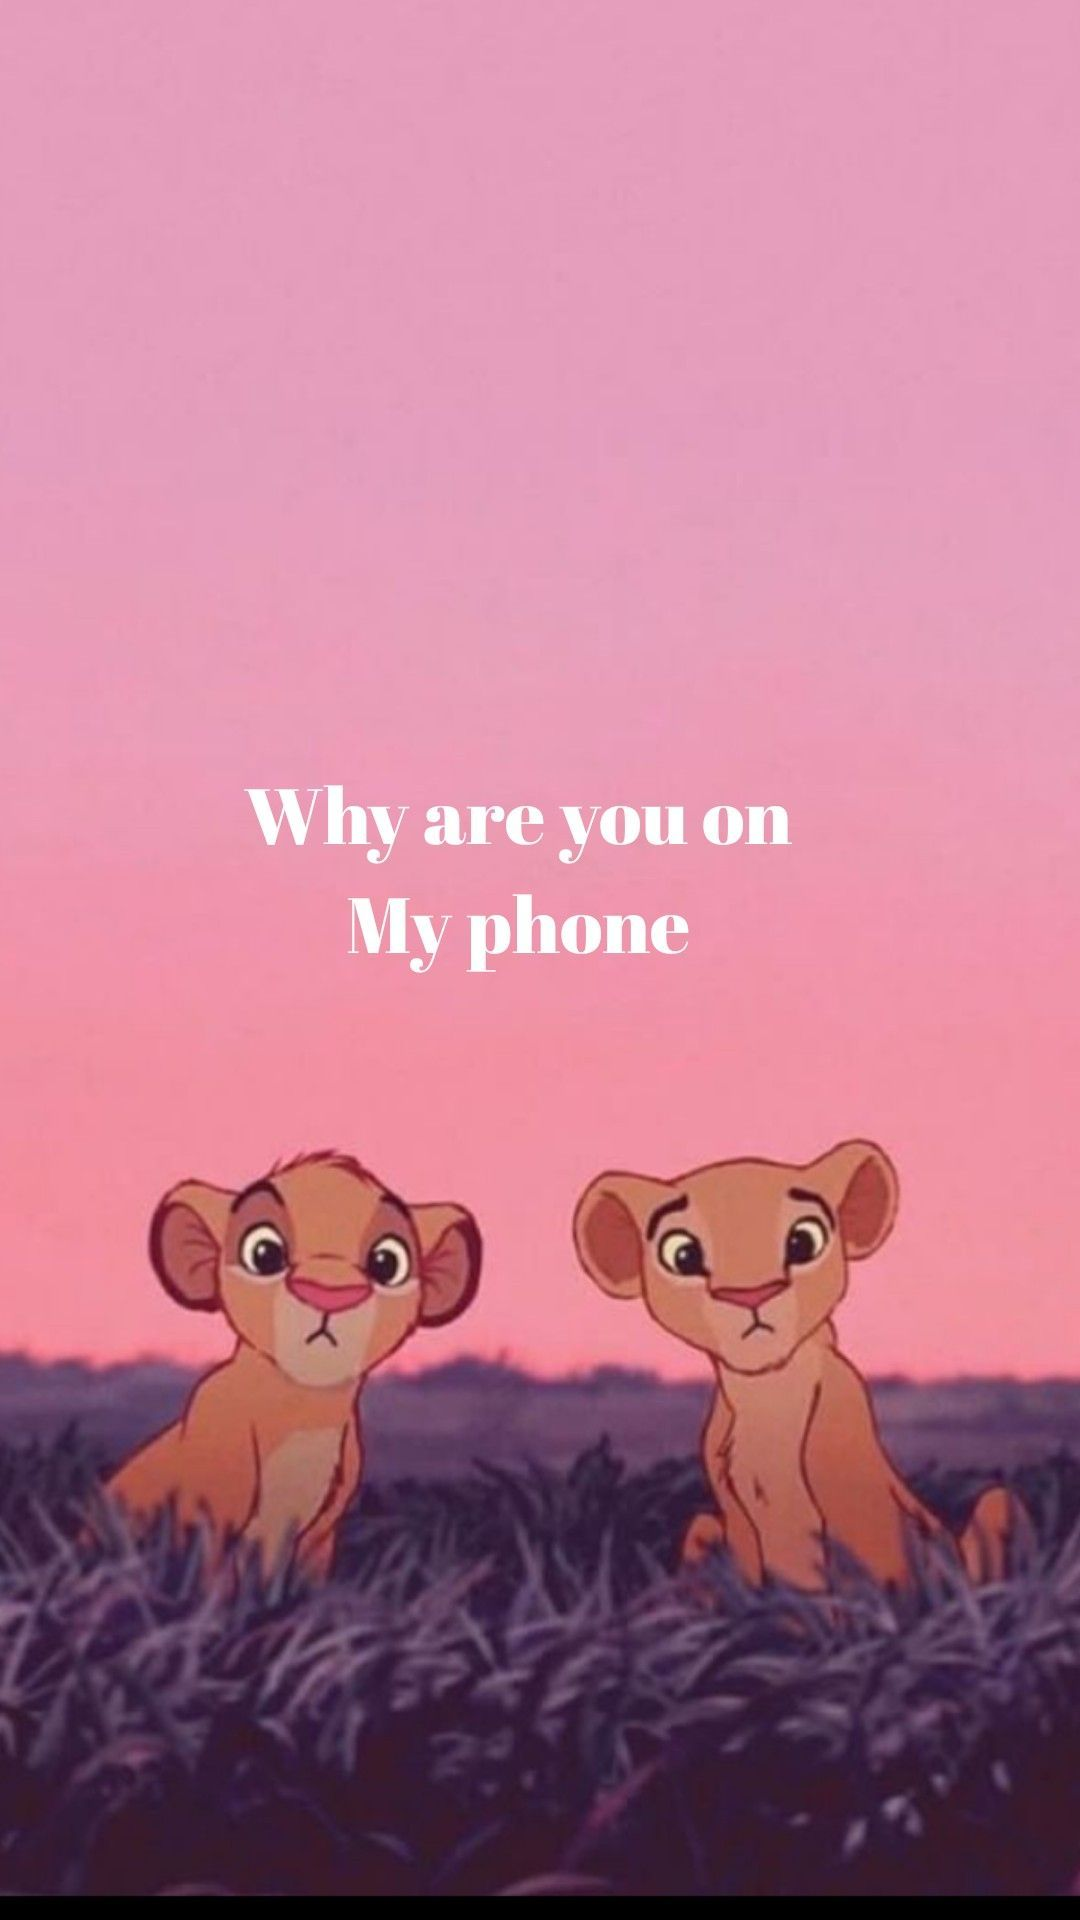 Lion King Behang In 2020 Funny Iphone Wallpaper Disney Phone Wallpaper Wallpaper Iphone Cute